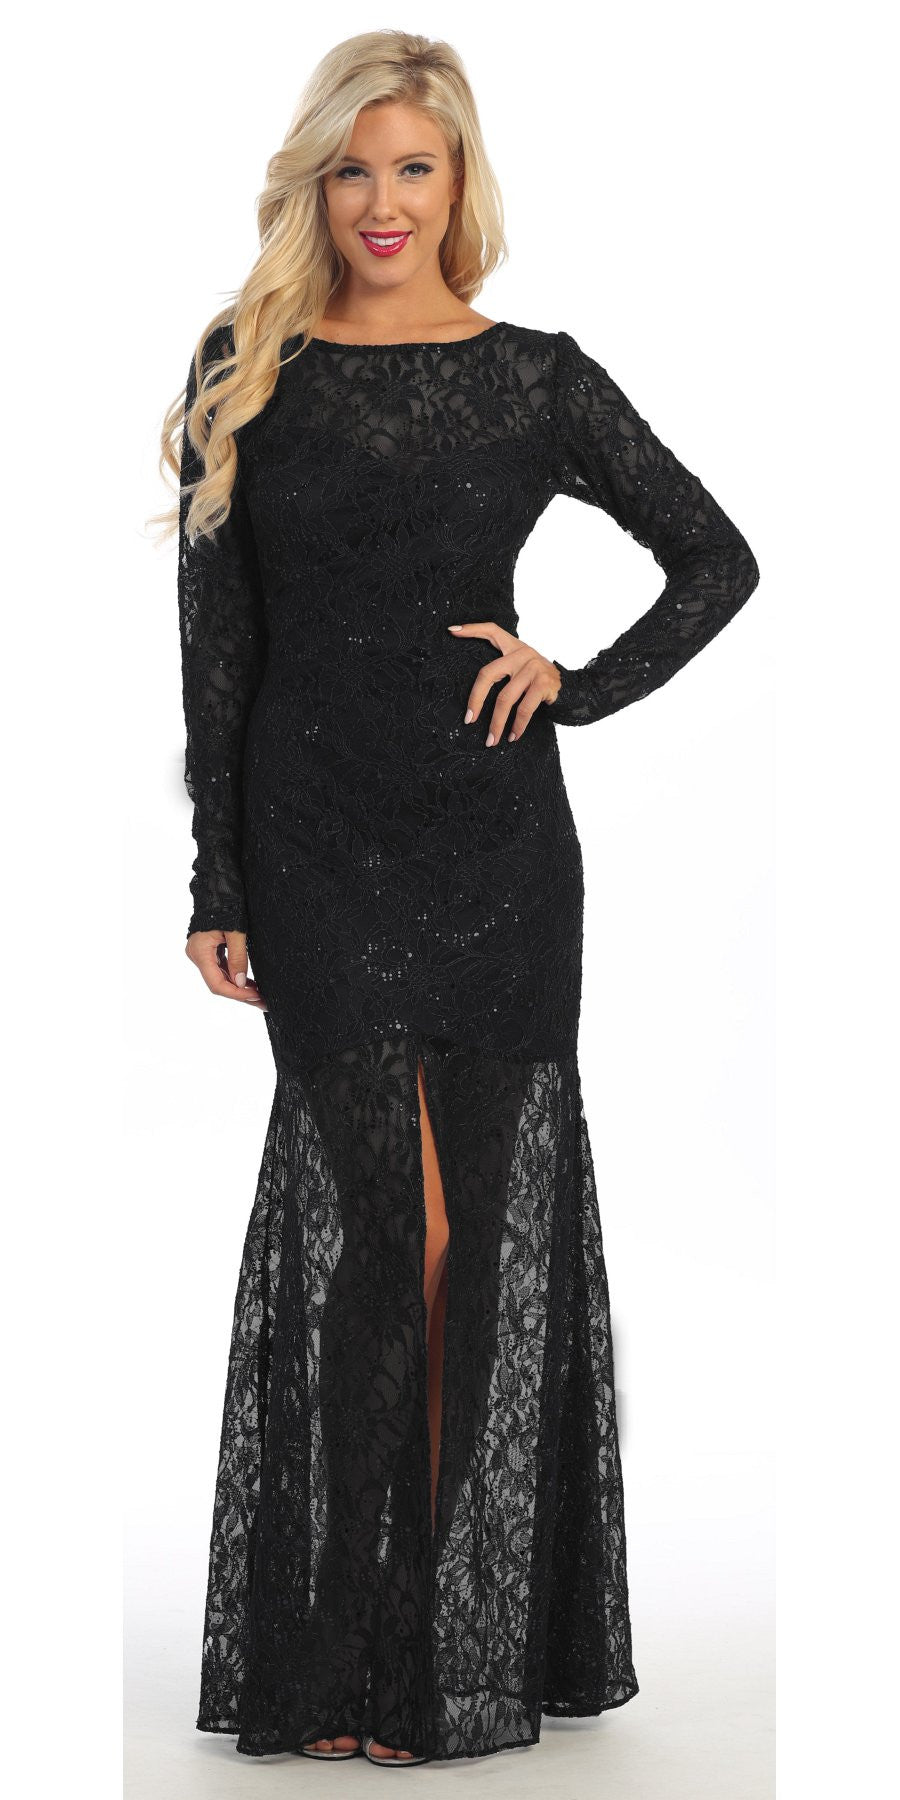 Long Lace Semi Formal Gown Navy Blue Long Sleeve Illusion Skirt